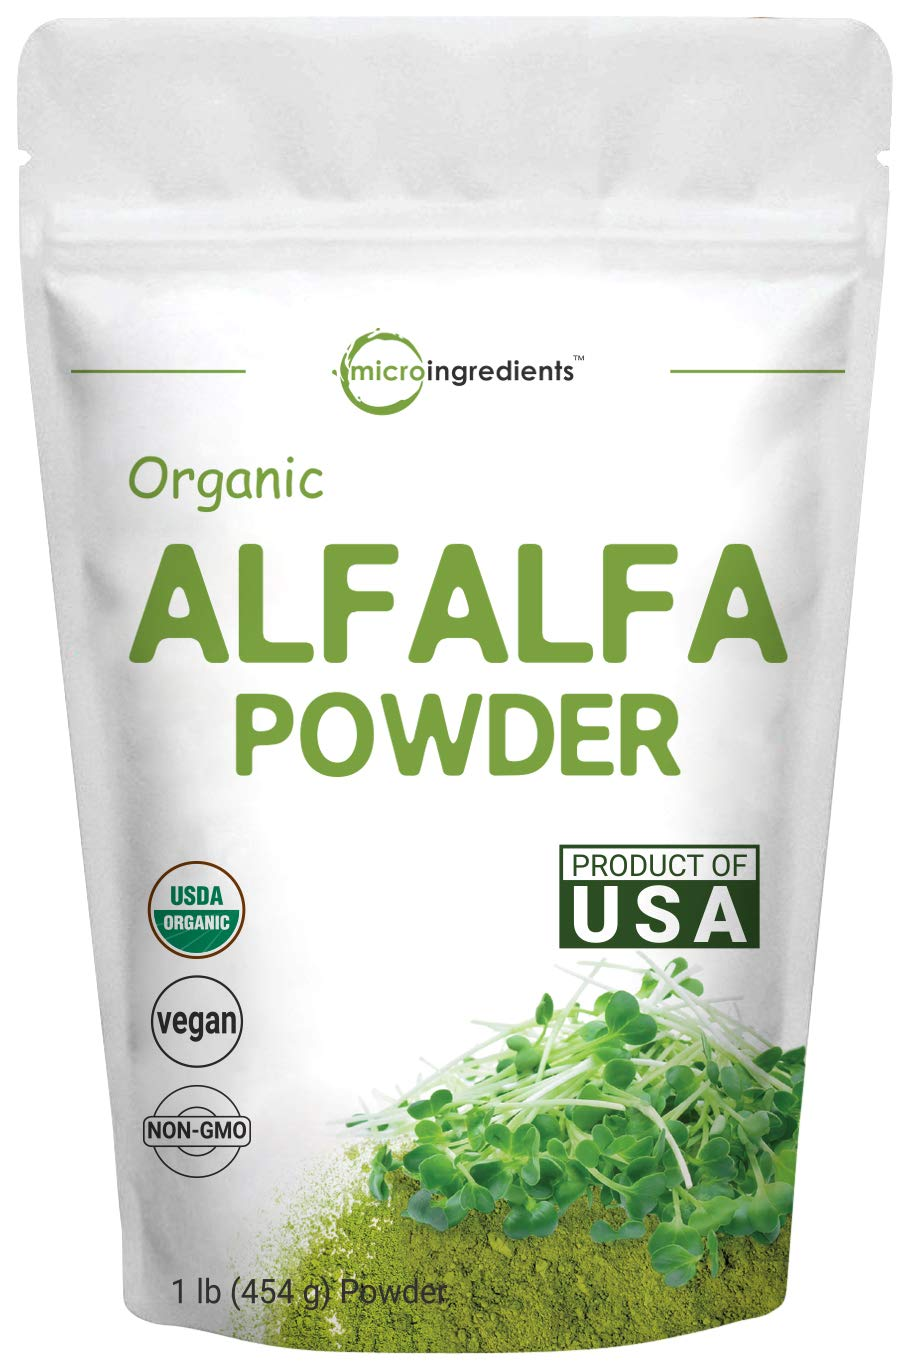 Sustainably US Grown, Organic Alfalfa Powder, 1 Pound (16 Ounce), Contains Immune Vitamin C and Minerals, Best Green Superfoods for Smoothie, Drinks, Beverage and Cookies, Non-GMO and Vegan Friendly